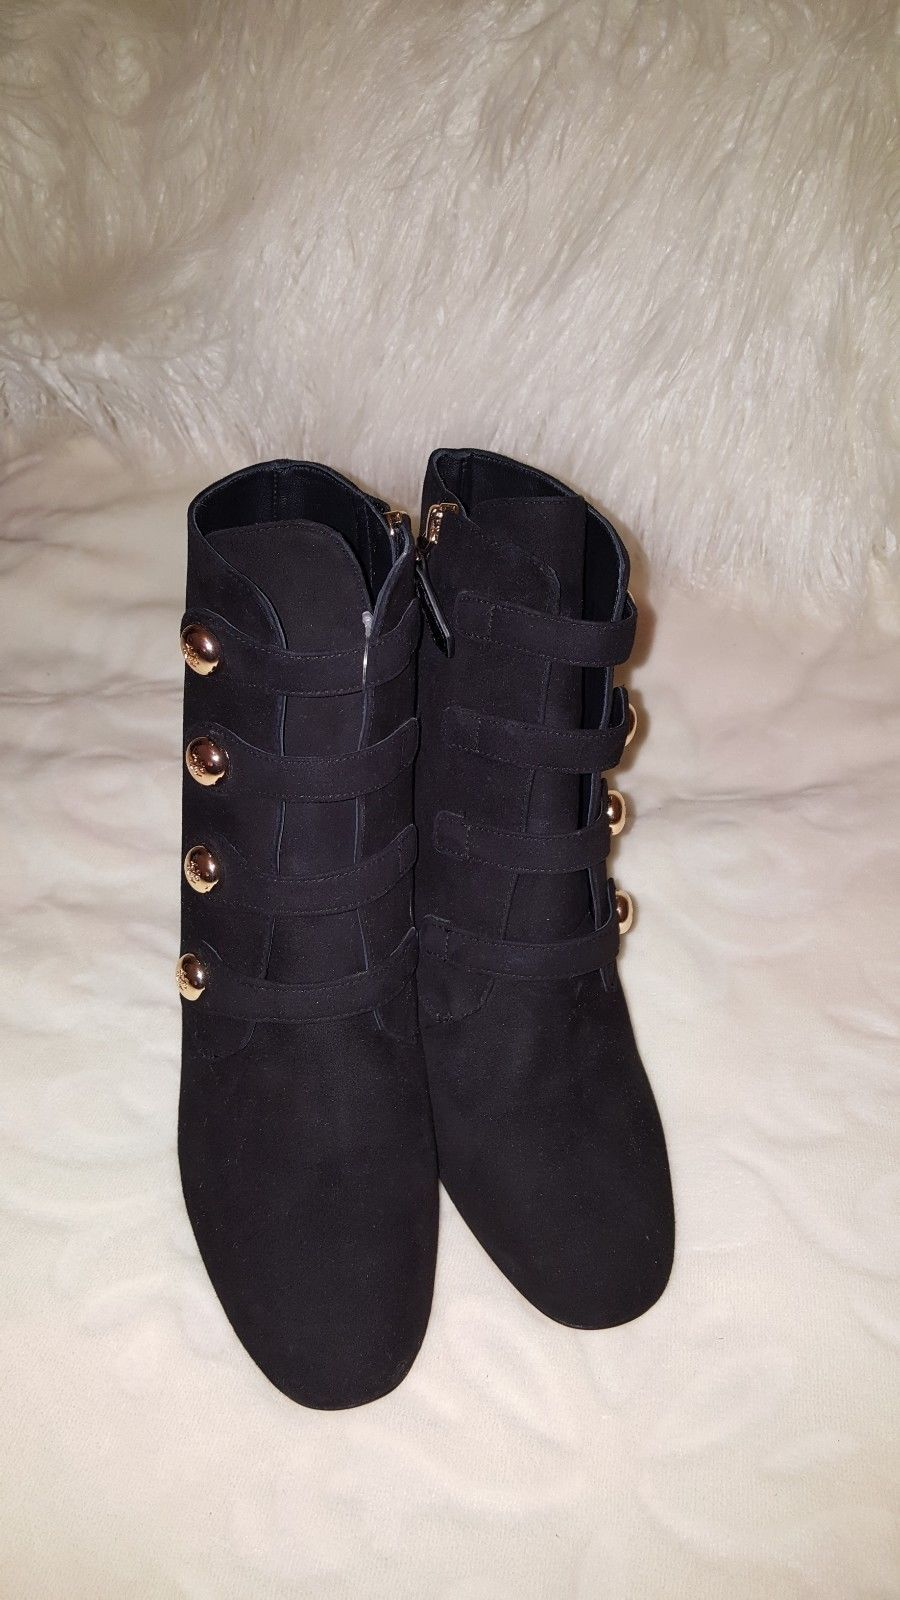 0641c900a19 Tory Burch Black Fine Suede Gold Buttons Ankle Heel Boots Size 8